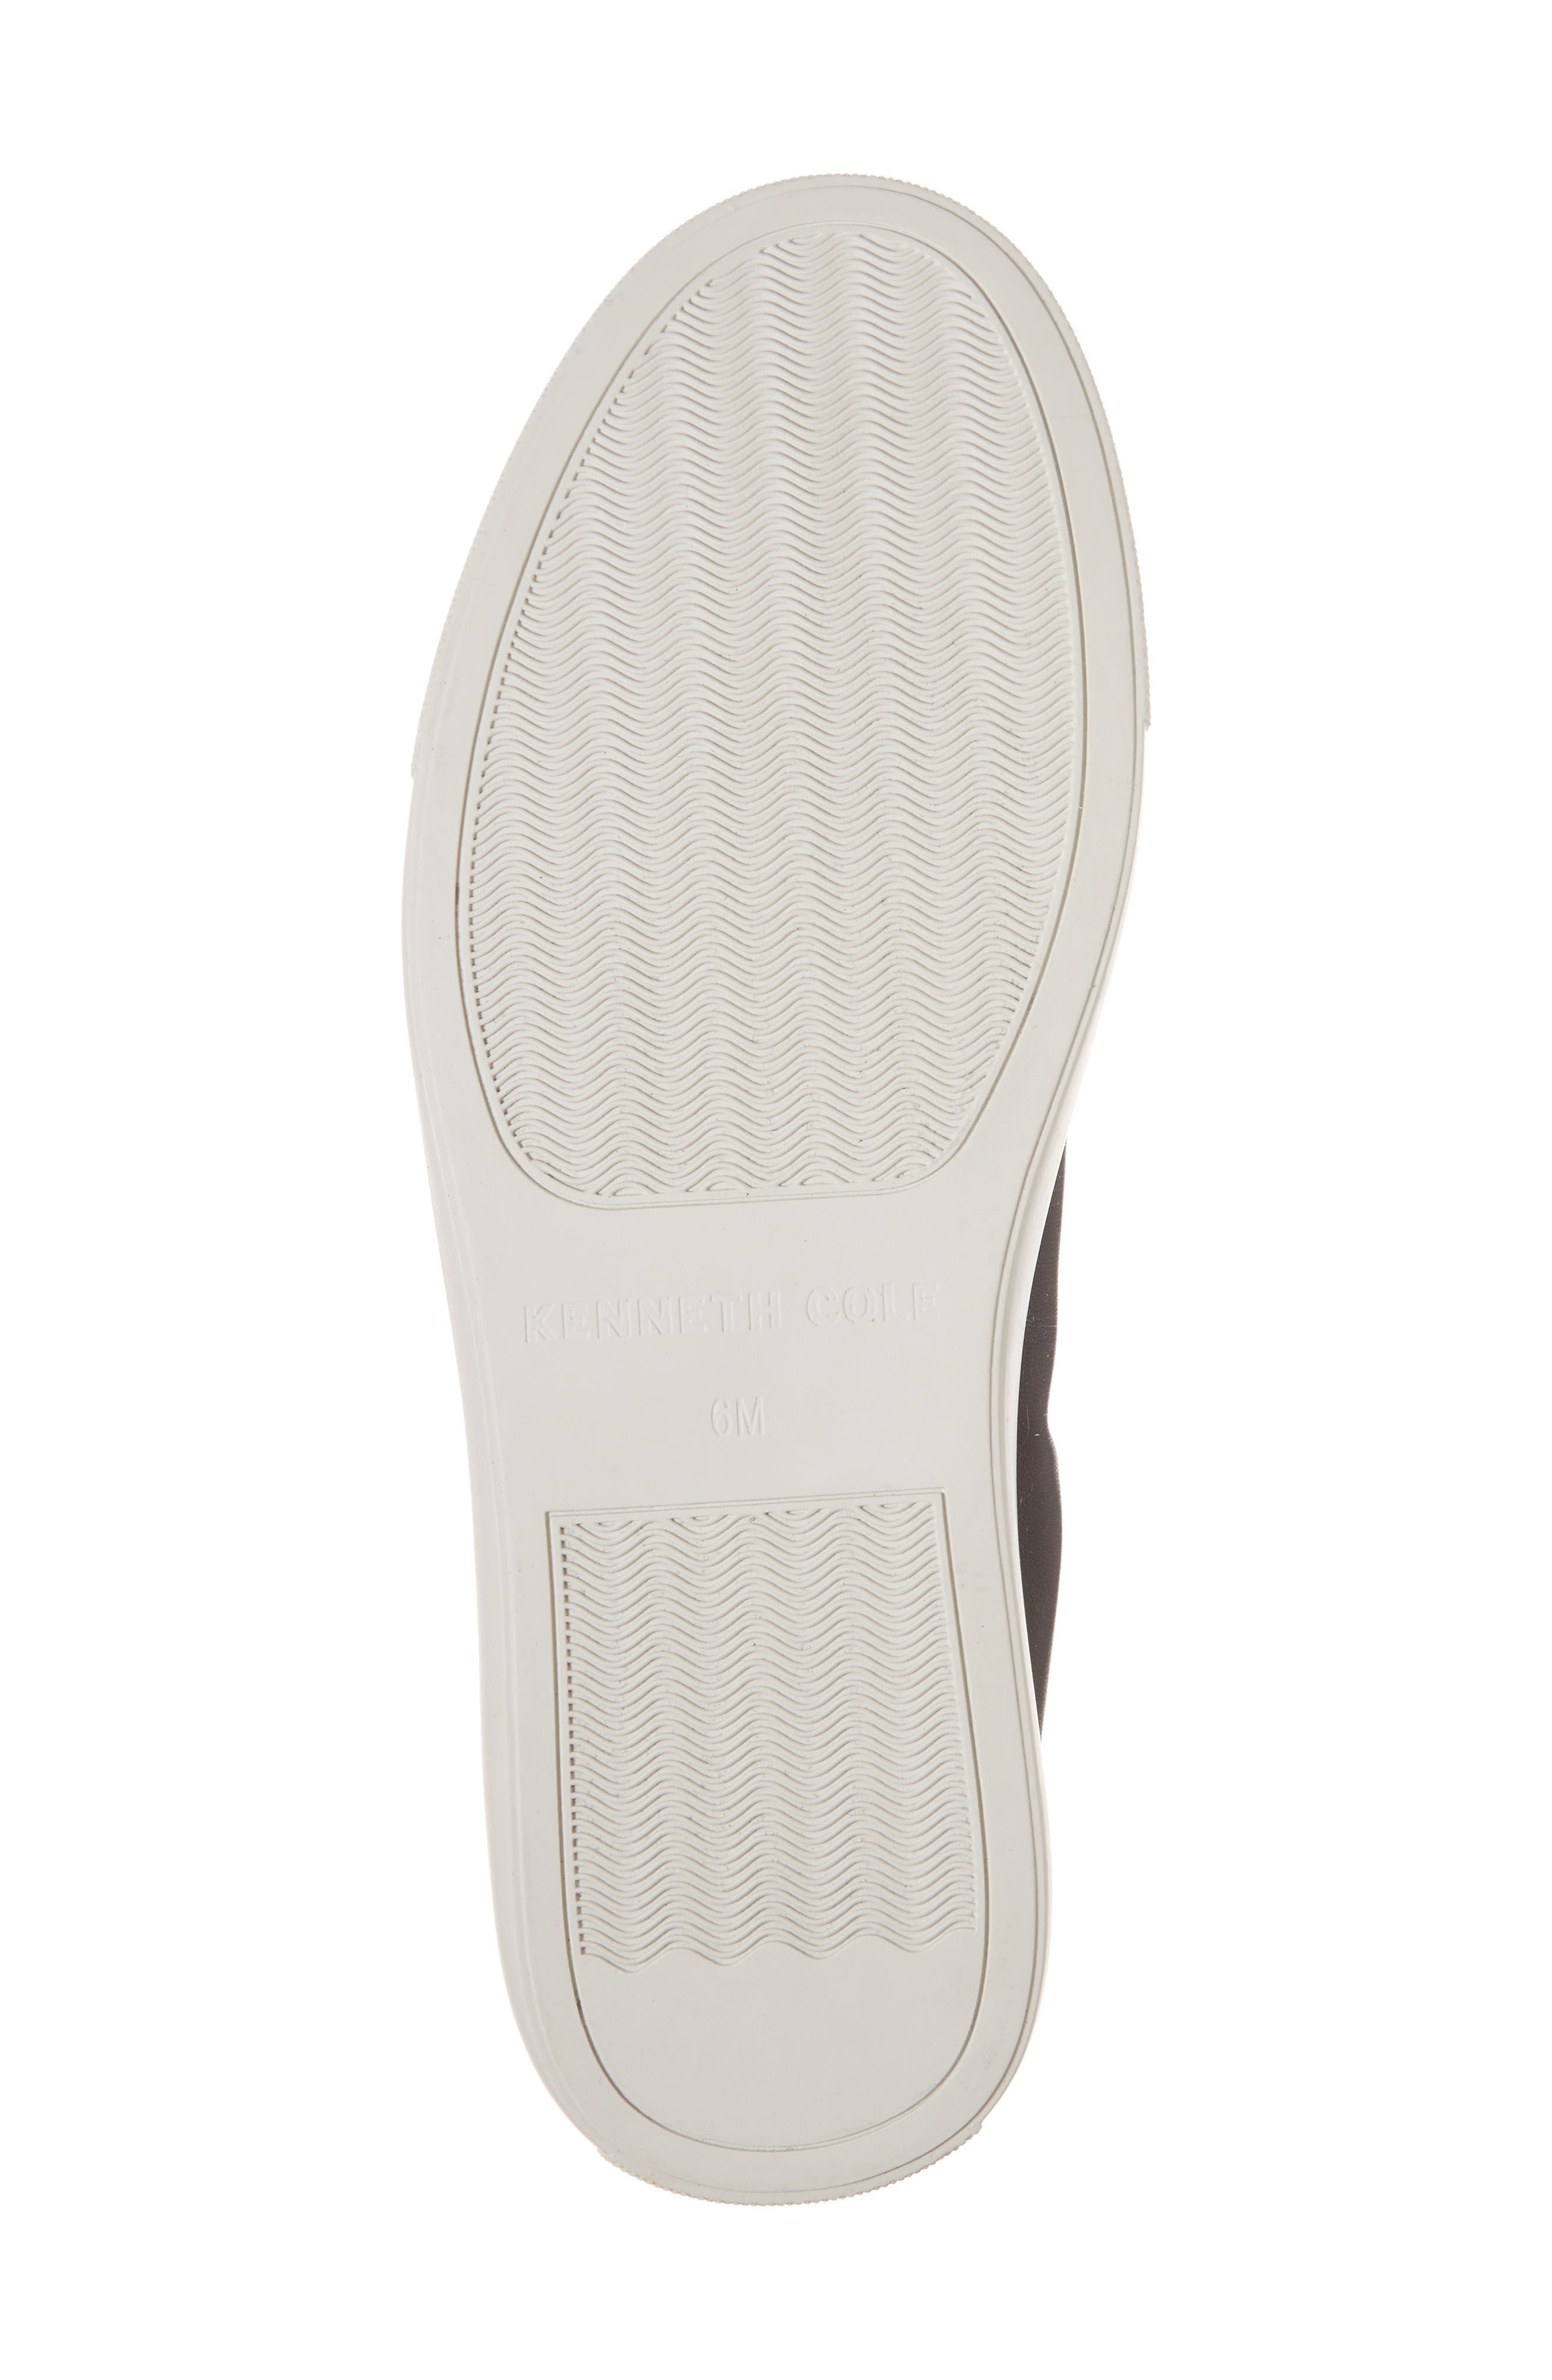 KENNETH COLE NEW YORK,                             Kam Techni-Cole Ballet Flat,                             Alternate thumbnail 6, color,                             001